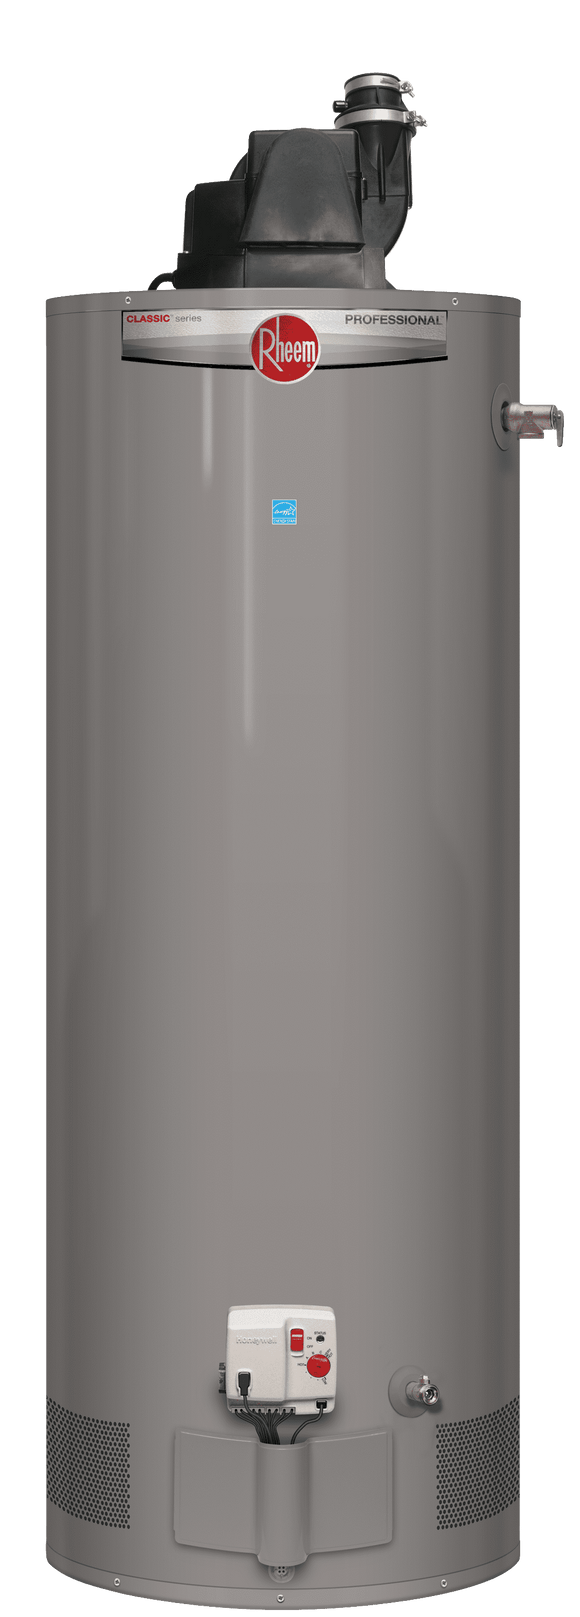 RHEEM PROG50S-32P RH67 PV Professional Classic 50 Gallon Short 32,000 BTU LP Gas Residential Power Vent Water Heater